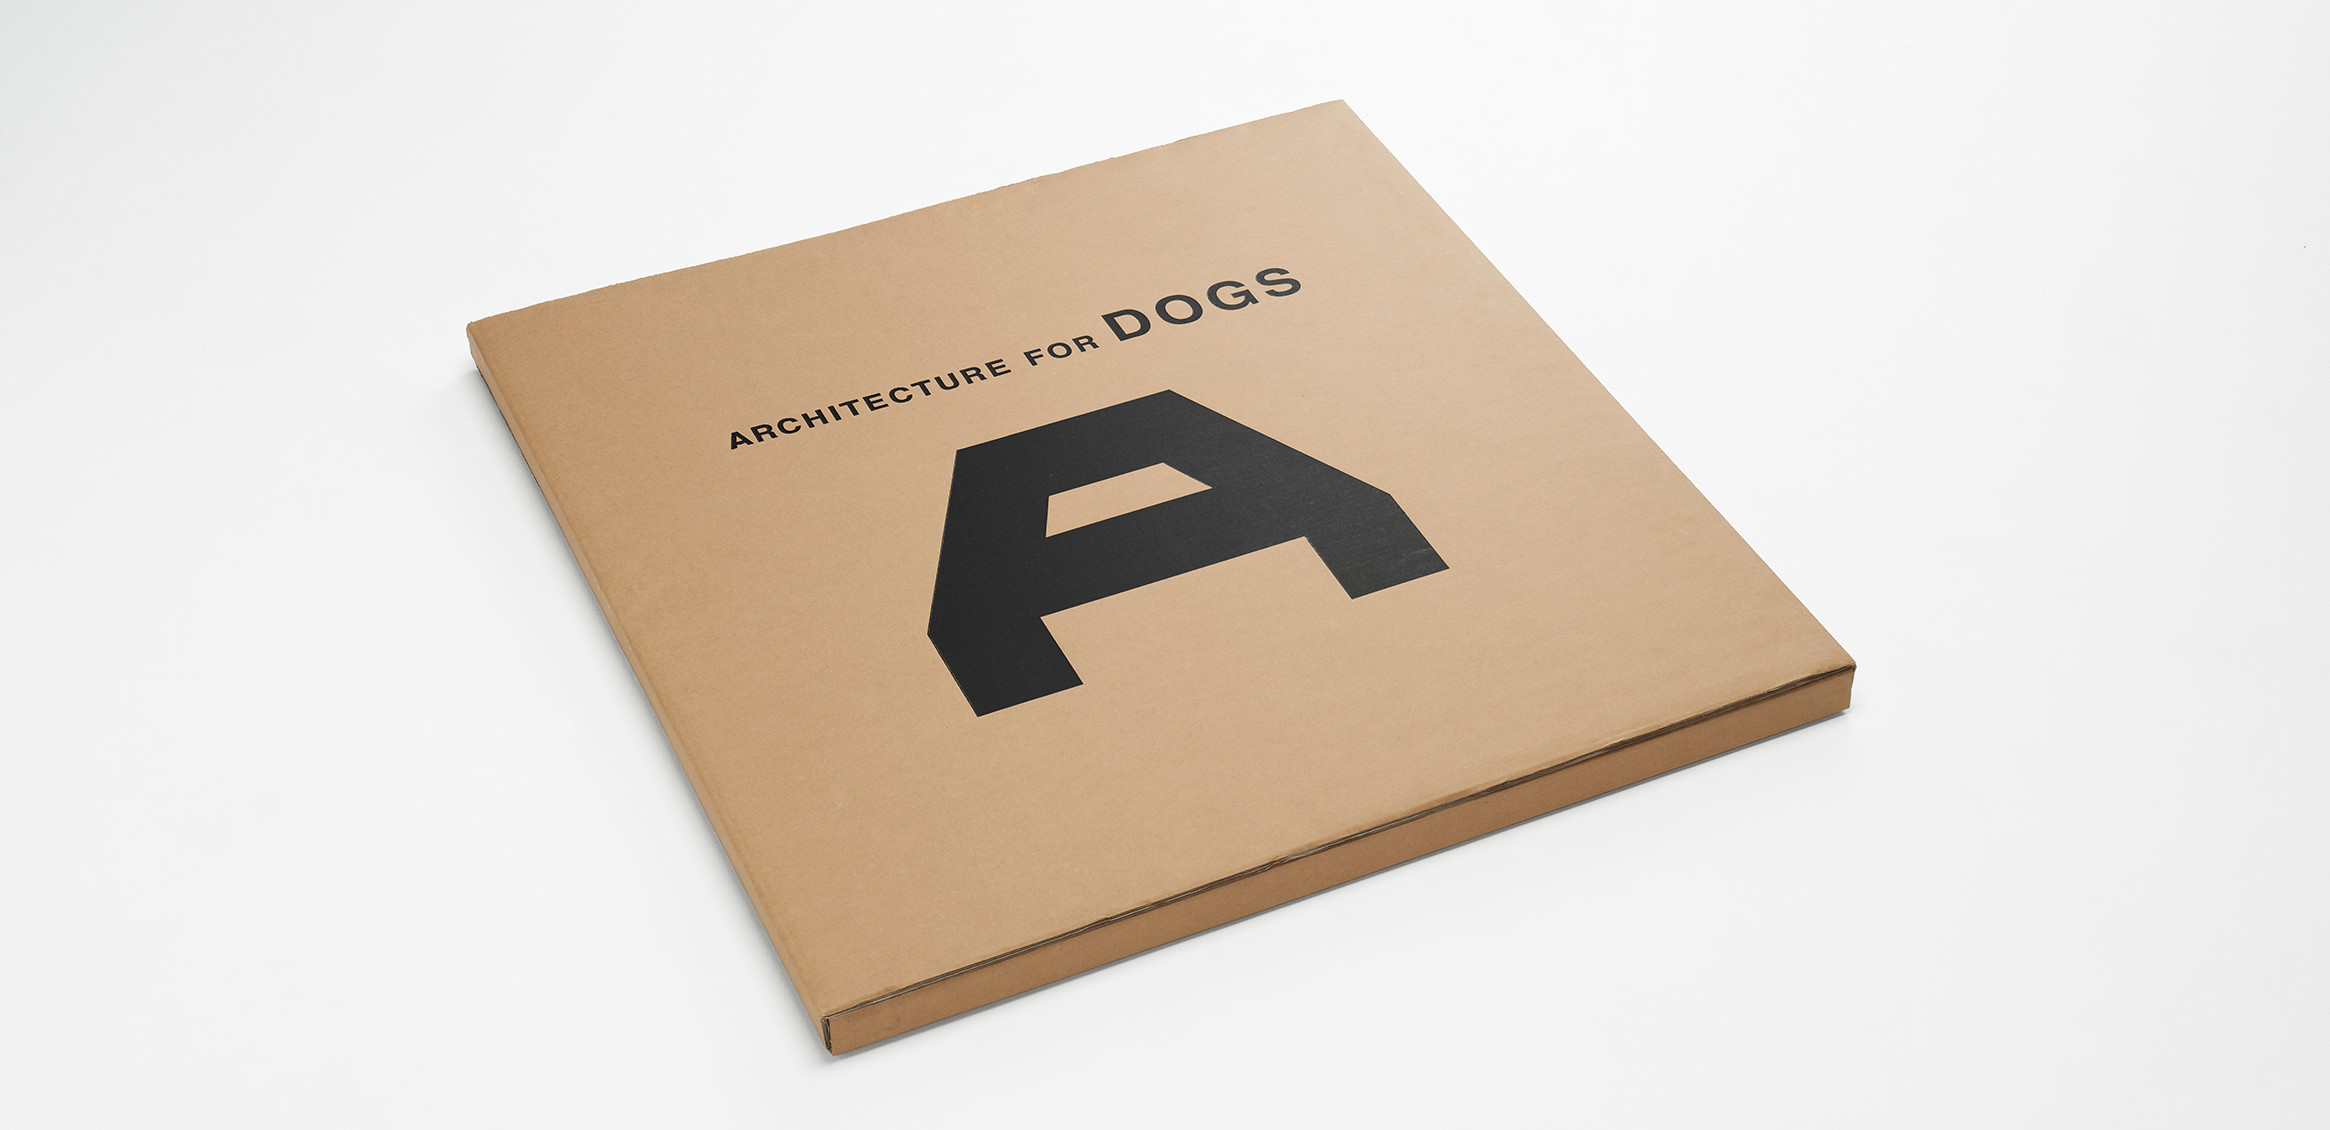 Architecture for Dogs0枚目